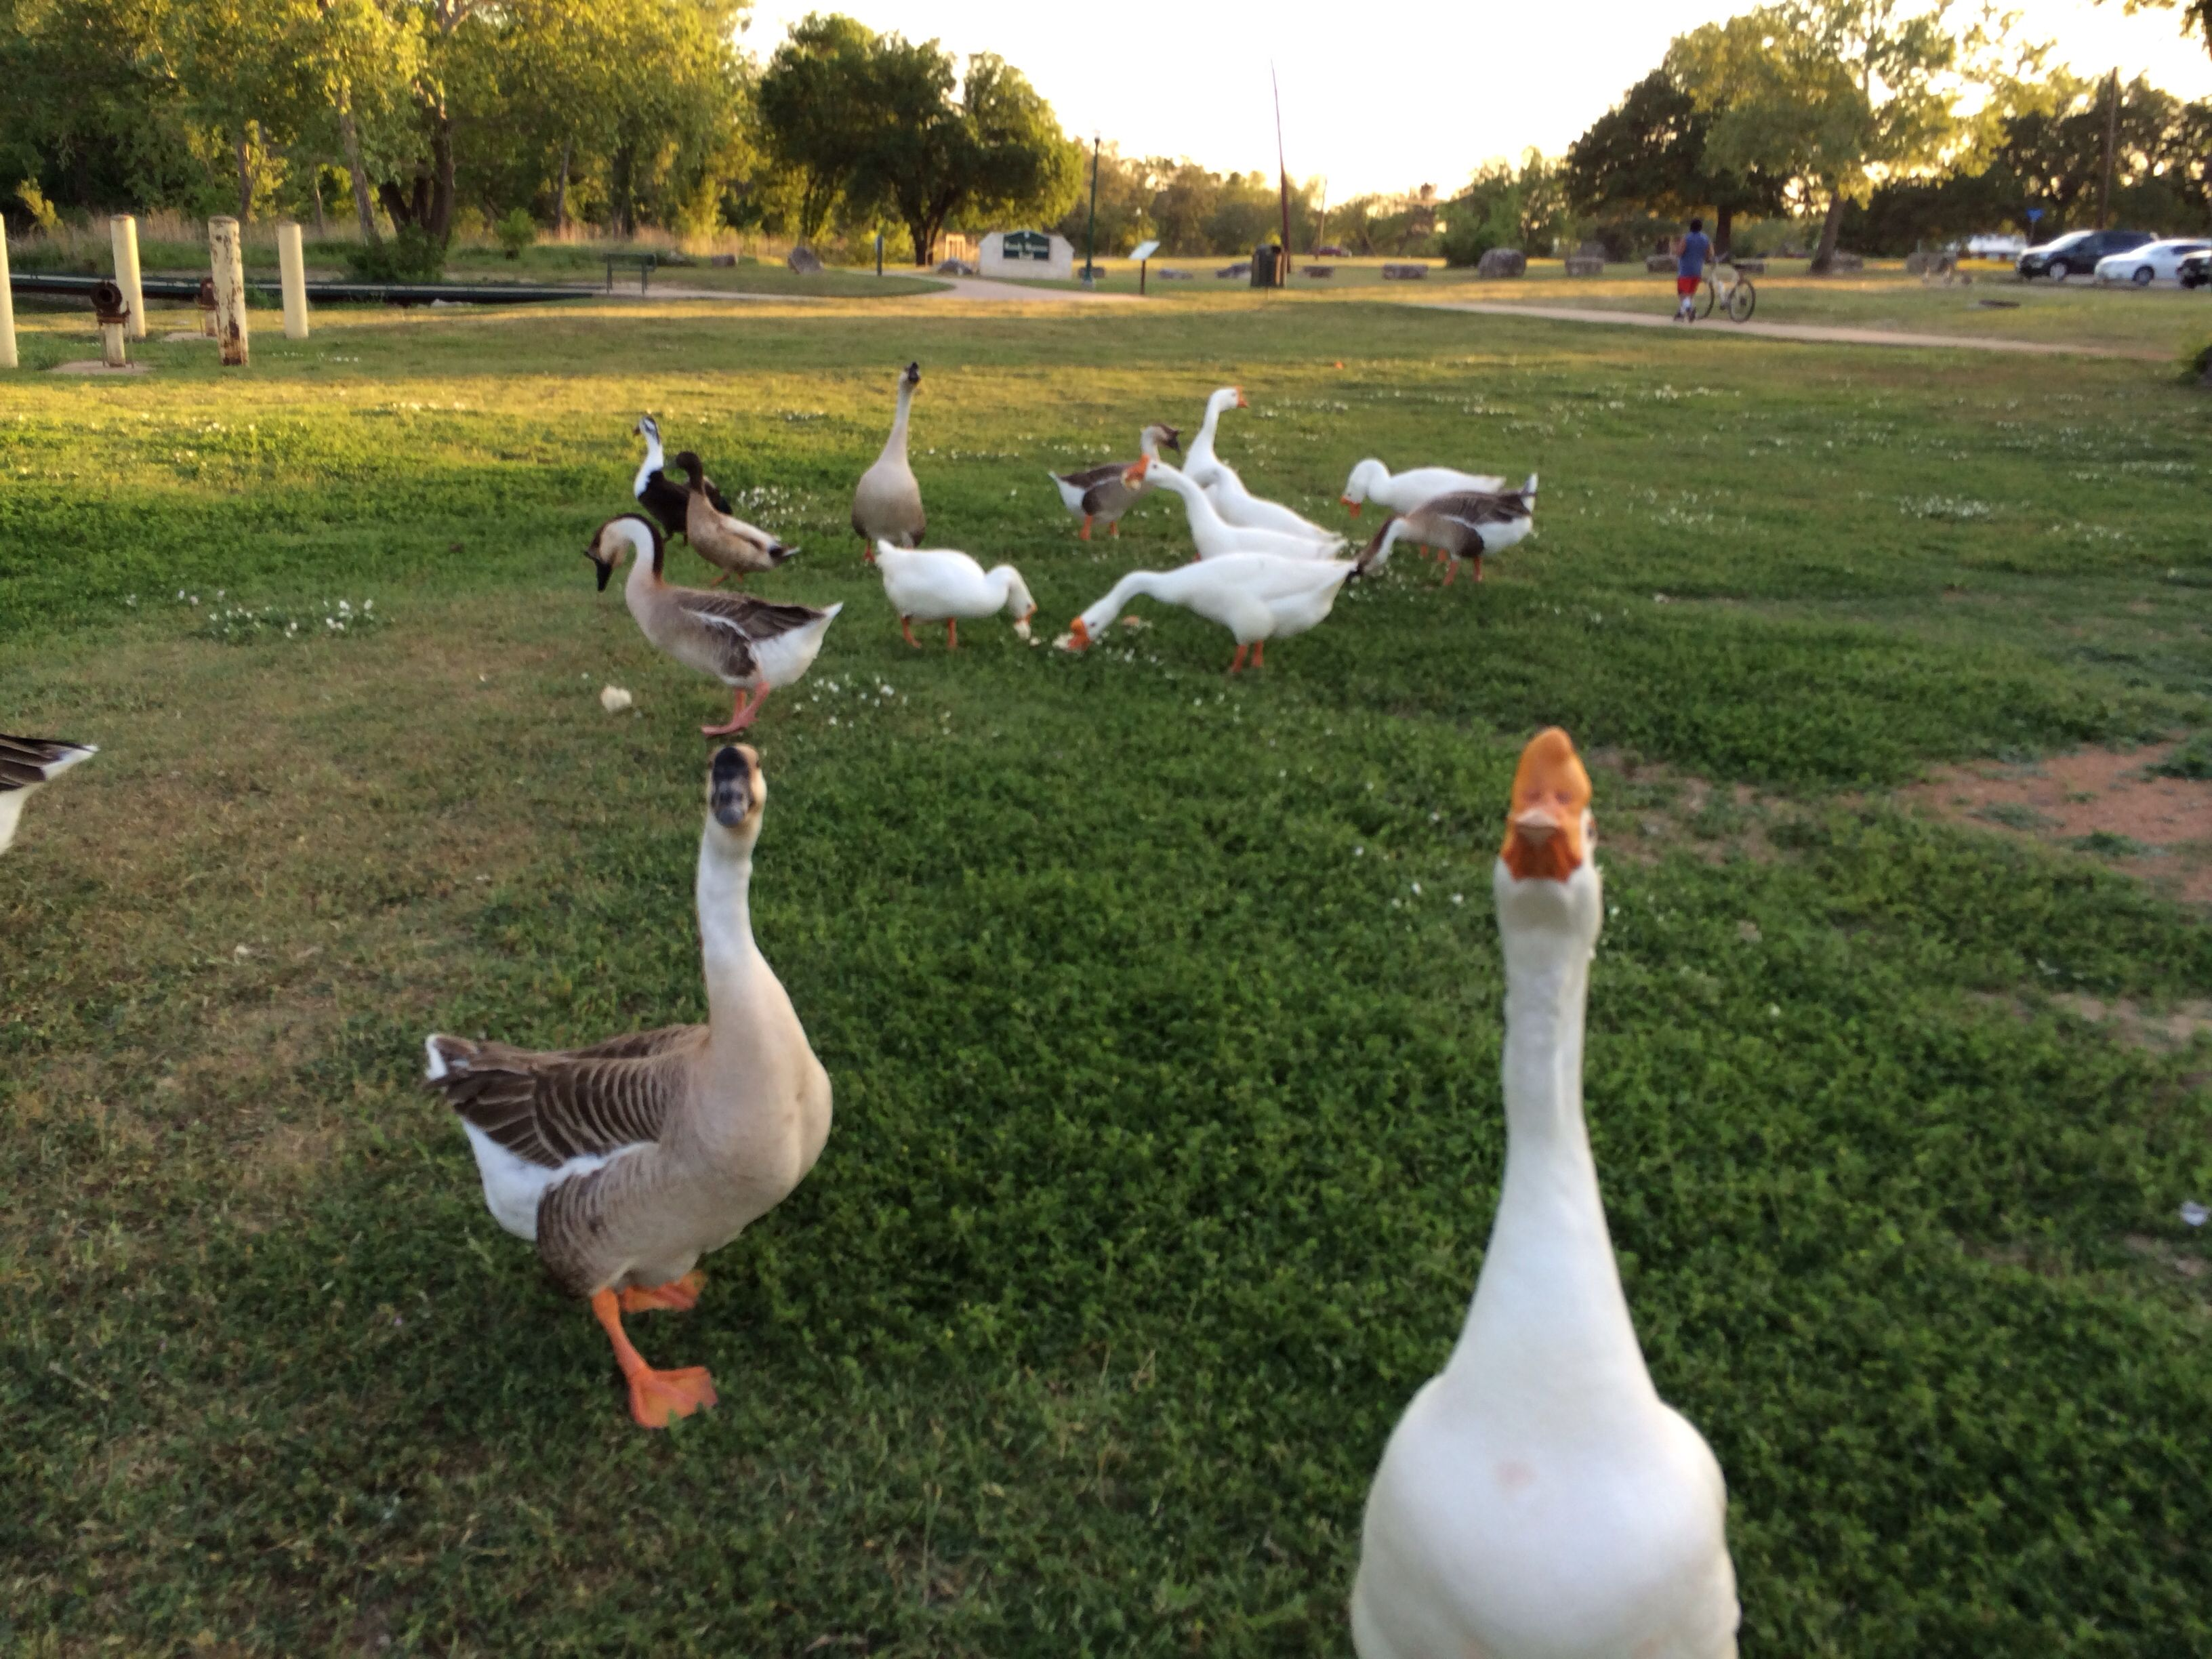 Remember to bring bread so you can feed the geese at San Gabriel Park!